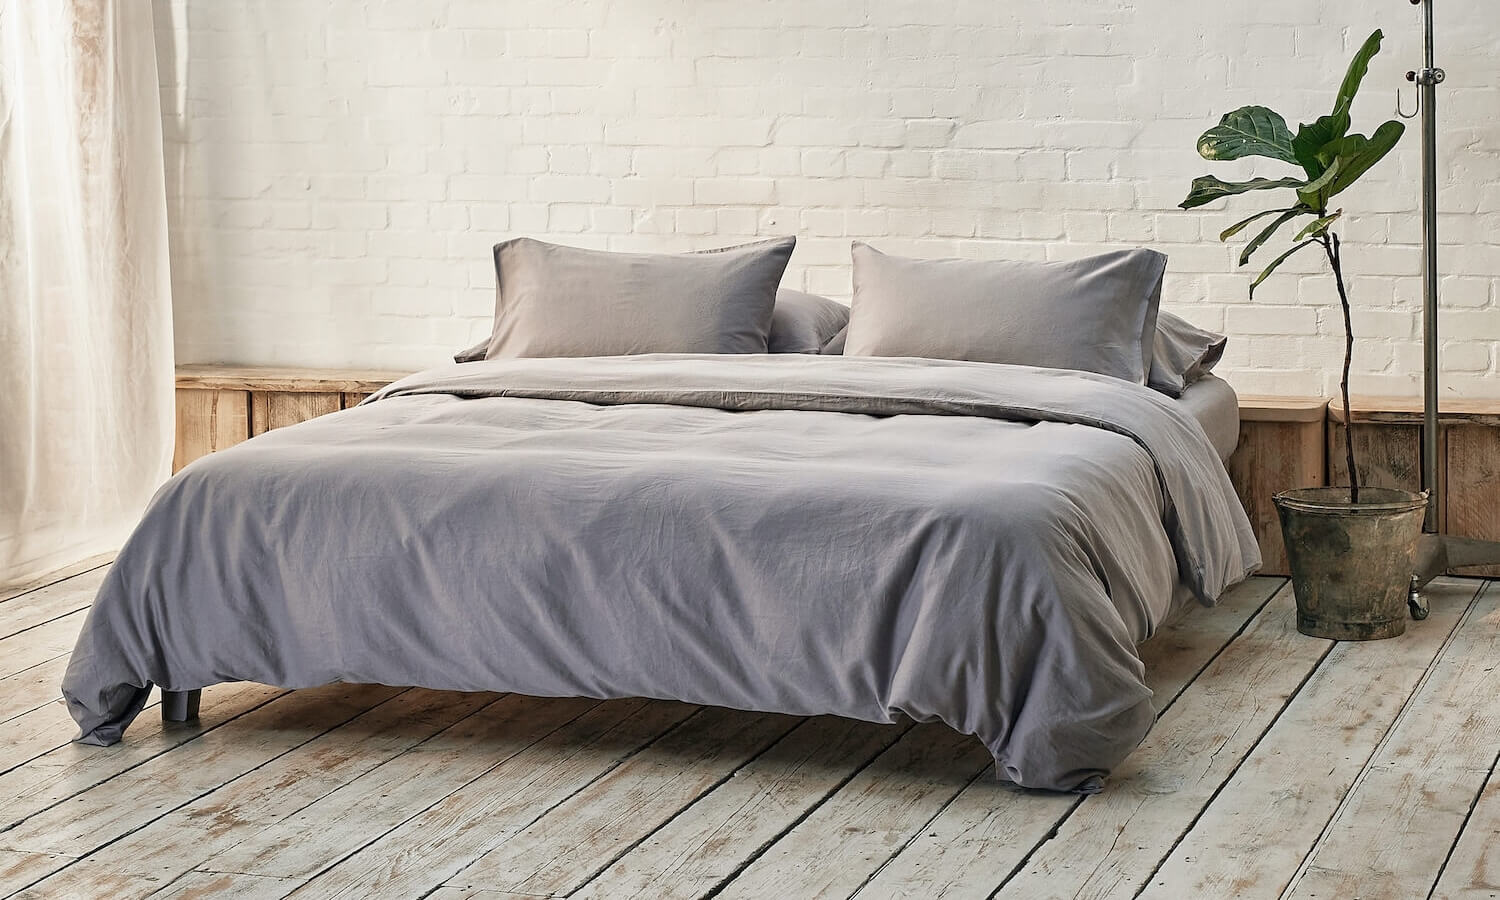 silver grey bedding on bed in a modern room